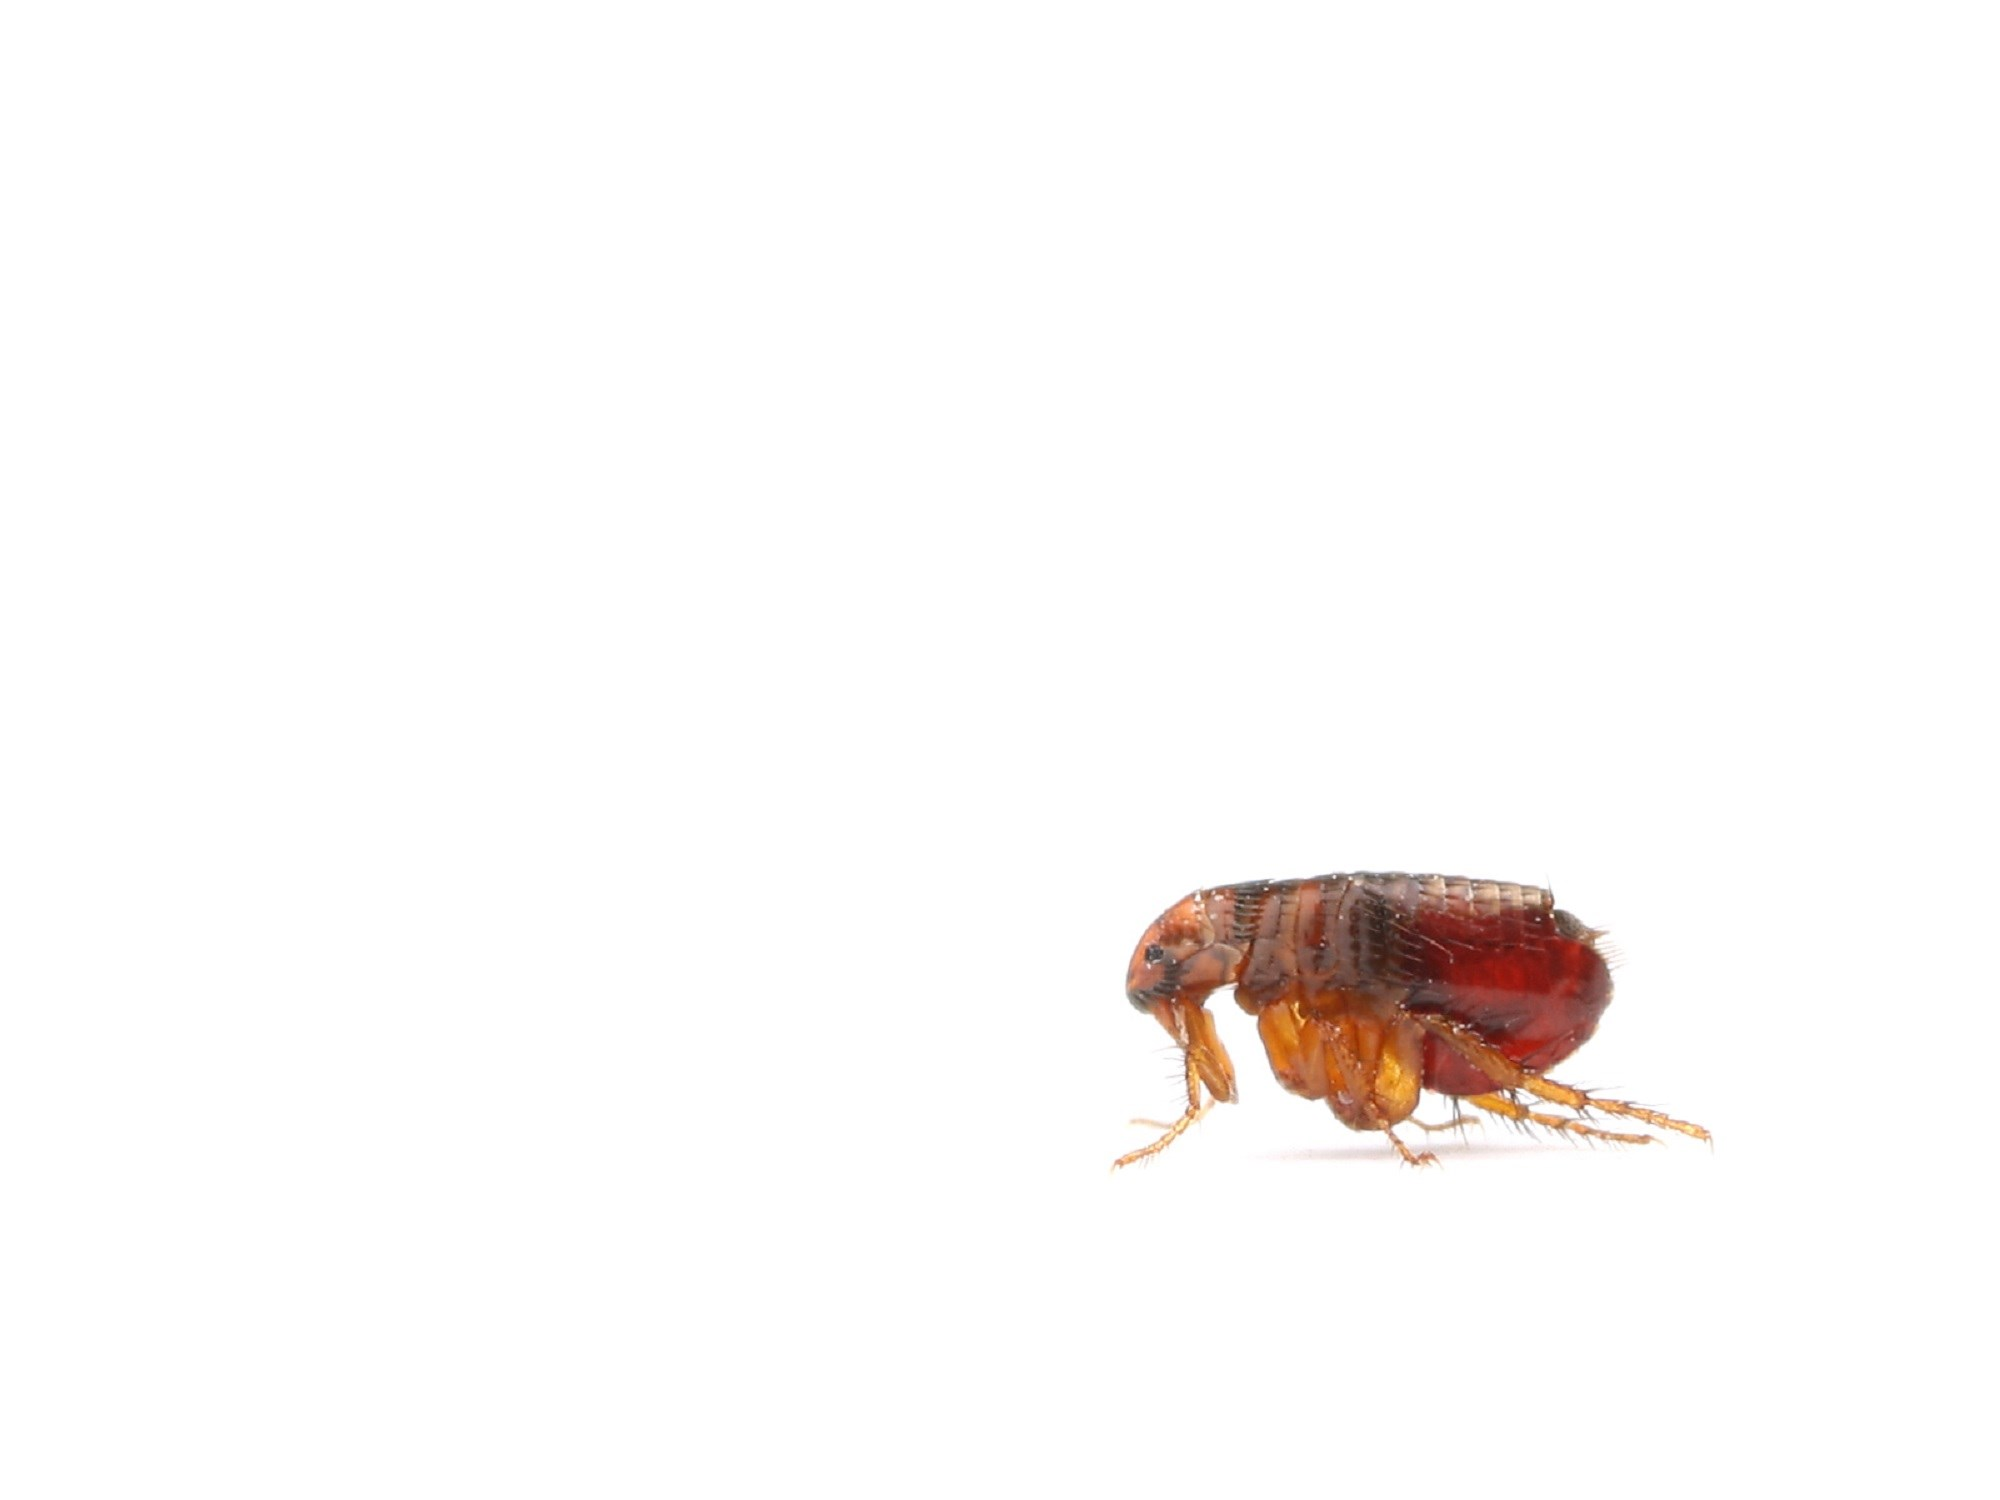 Flea-Borne Typhus Outbreak in Los Angeles County